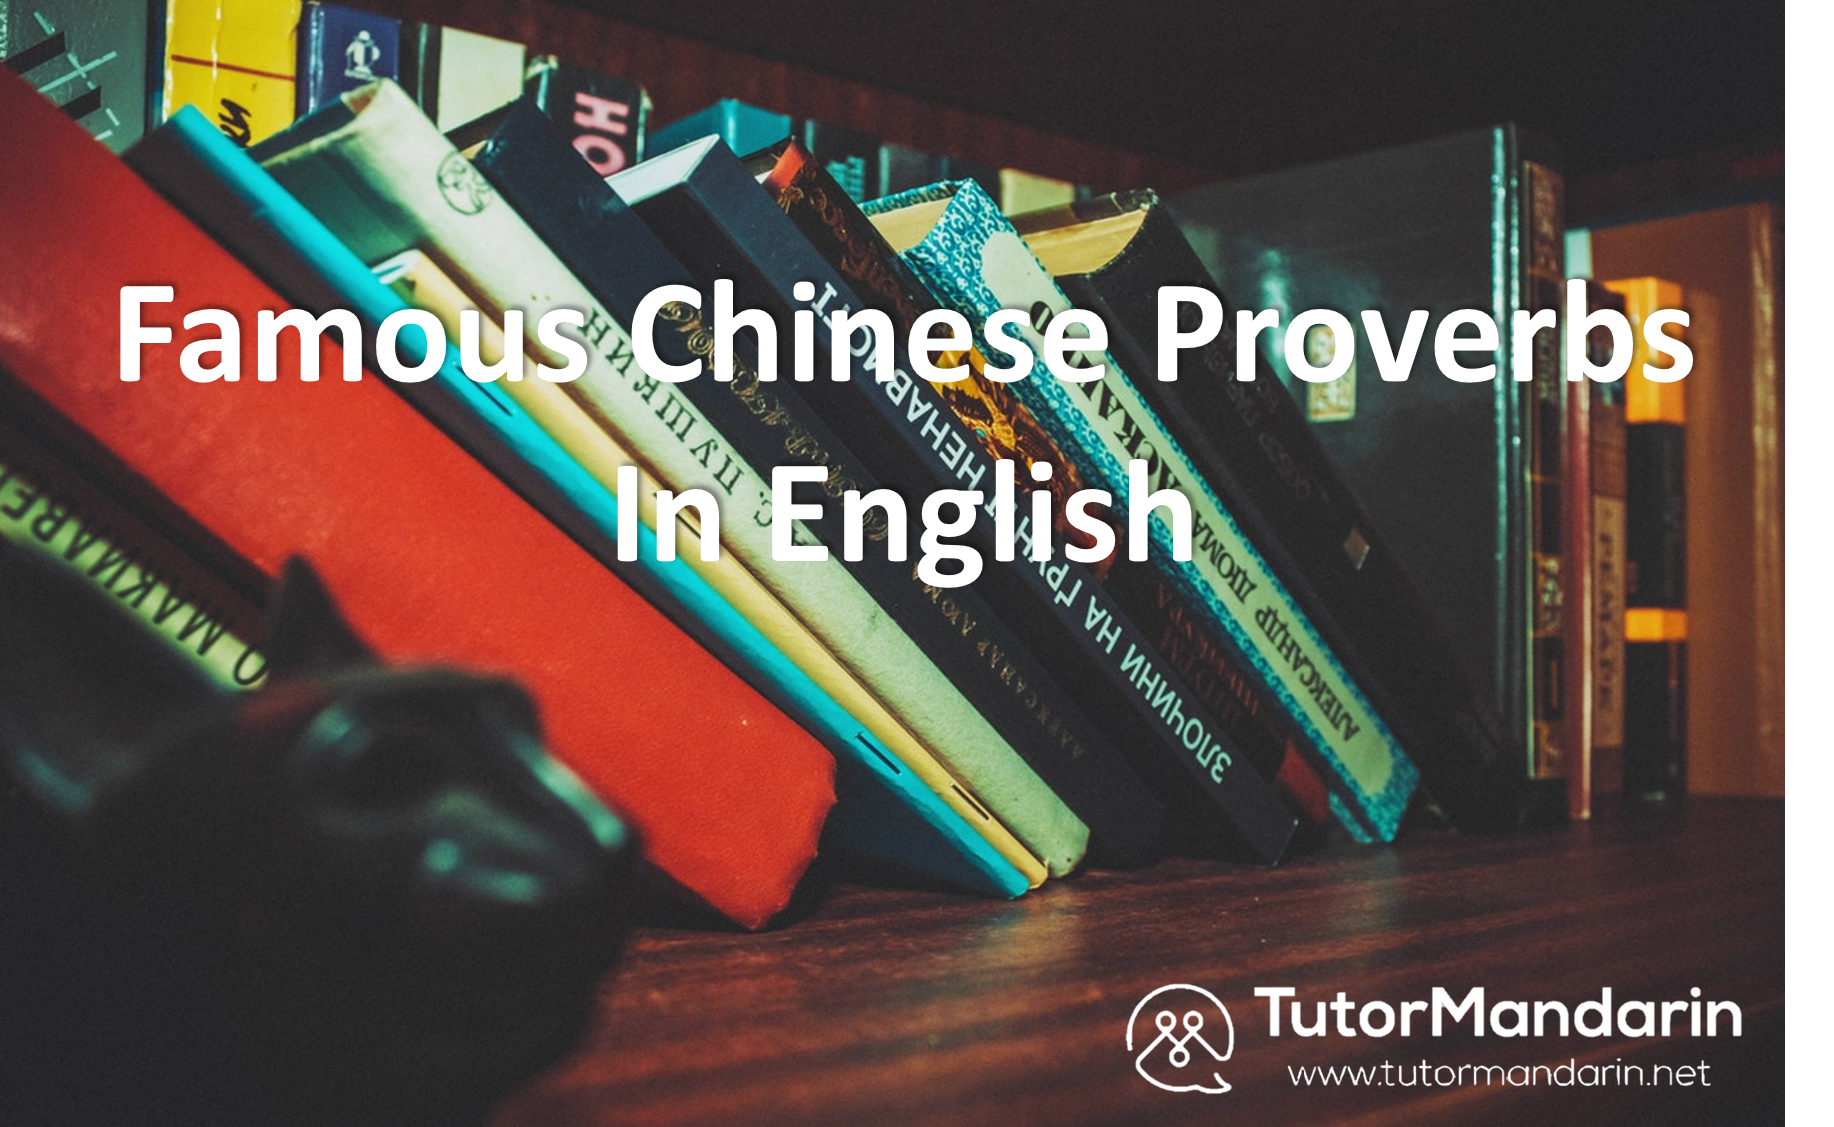 Popular Chinese proverbs that can be translated into English.